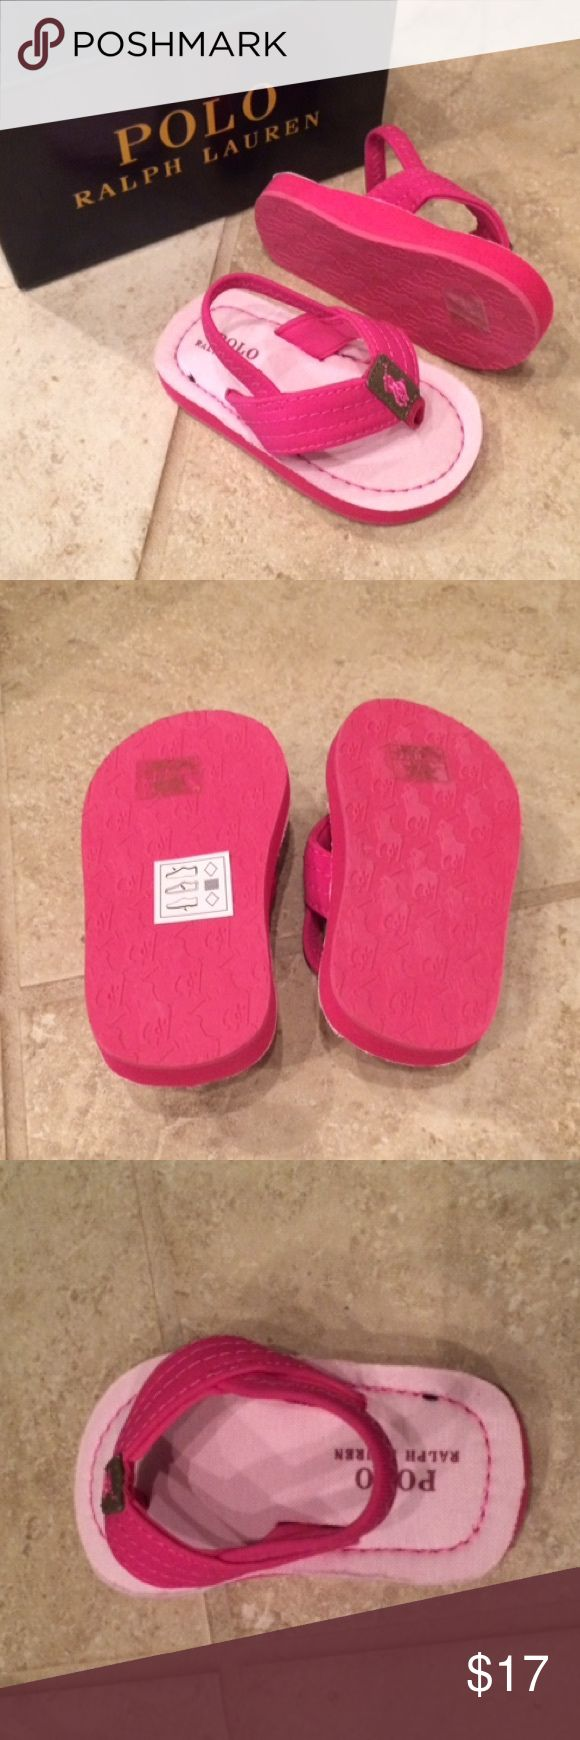 Polo Ralph Lauren Theo Sandals Polo Ralph Lauren girls Theo sandals in pink. Dense foam synthetic upper with darker pink stitching. Slip on design with blackstrap. Thong style construction with elastic slingback. Treaded rubber outsole. Polo by Ralph Lauren Shoes Sandals & Flip Flops